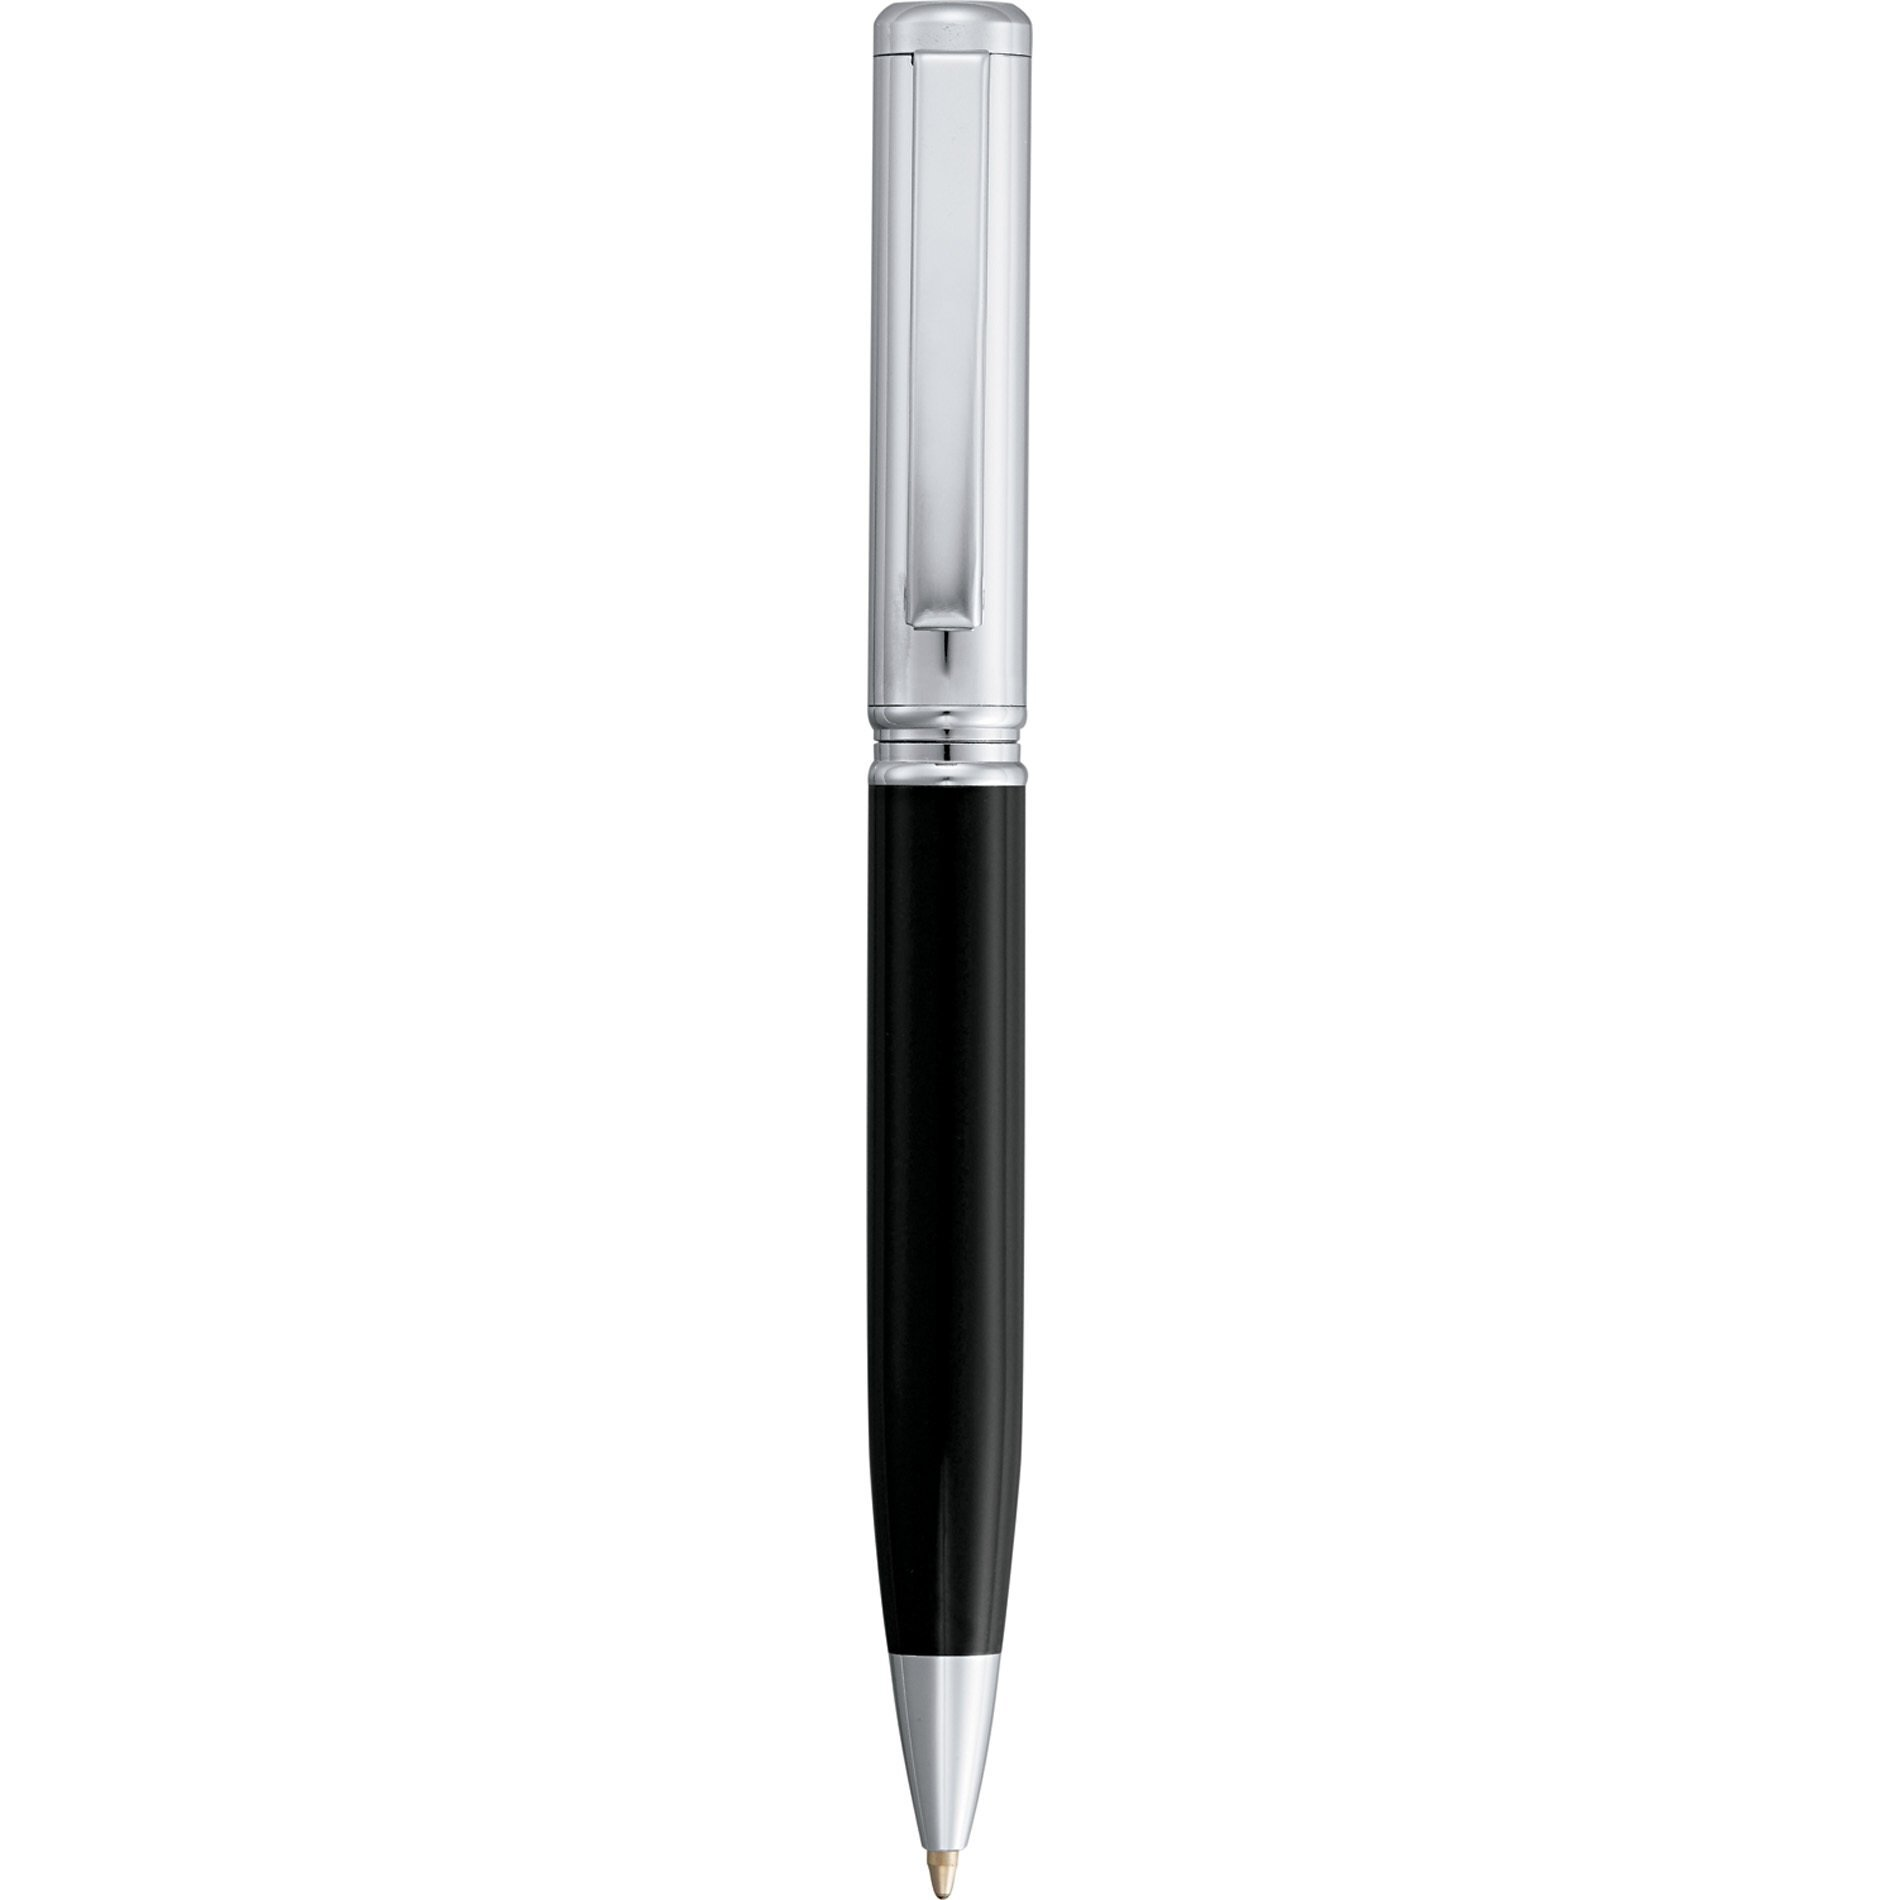 Emerson Twist Metal Gift Pen